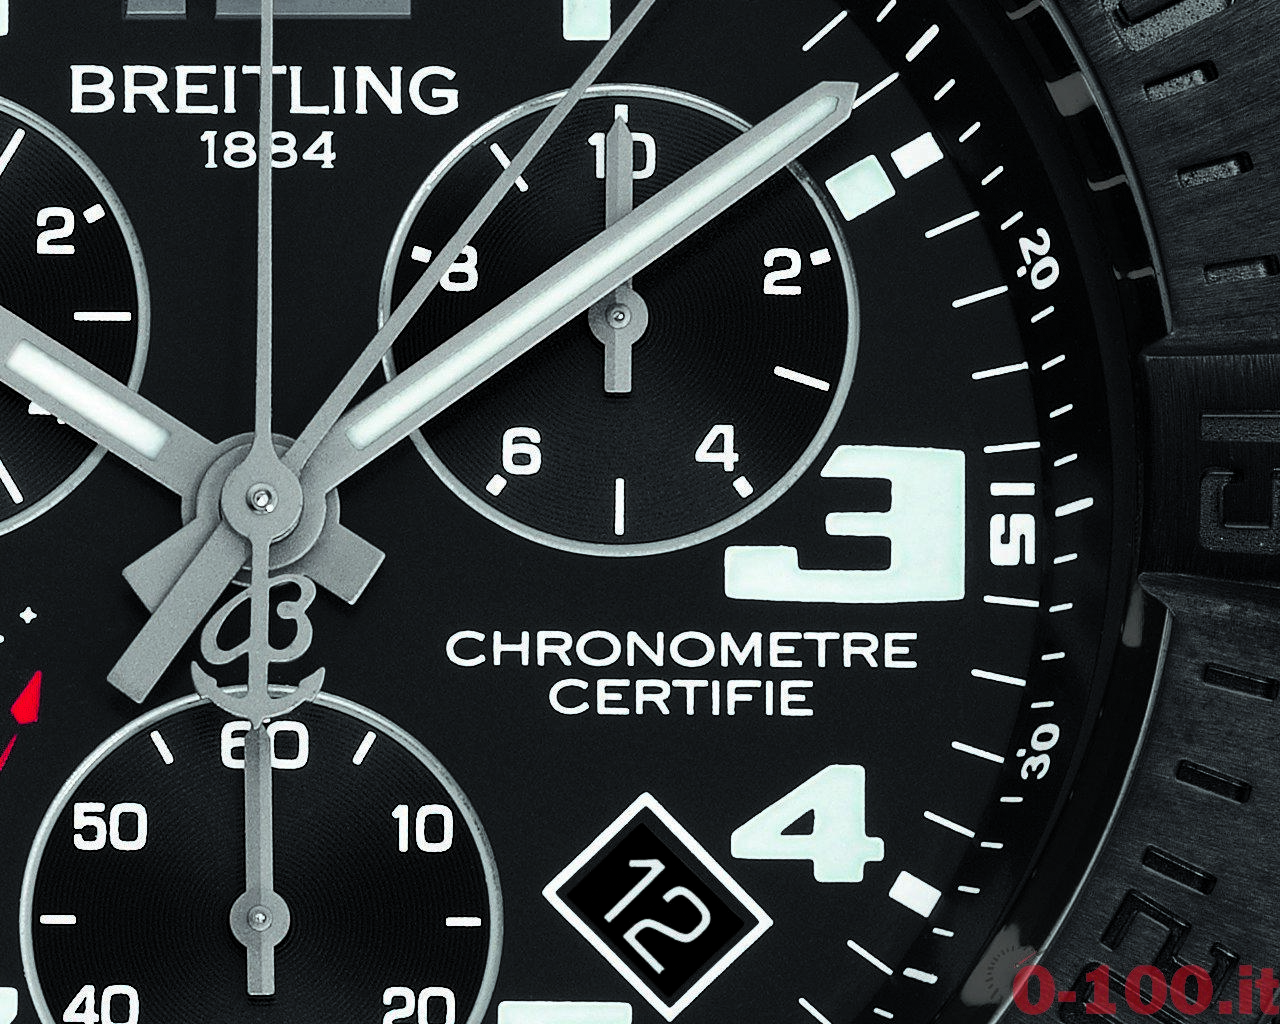 breitling-chronograph-s3-swiss-space-systems-0-100-3